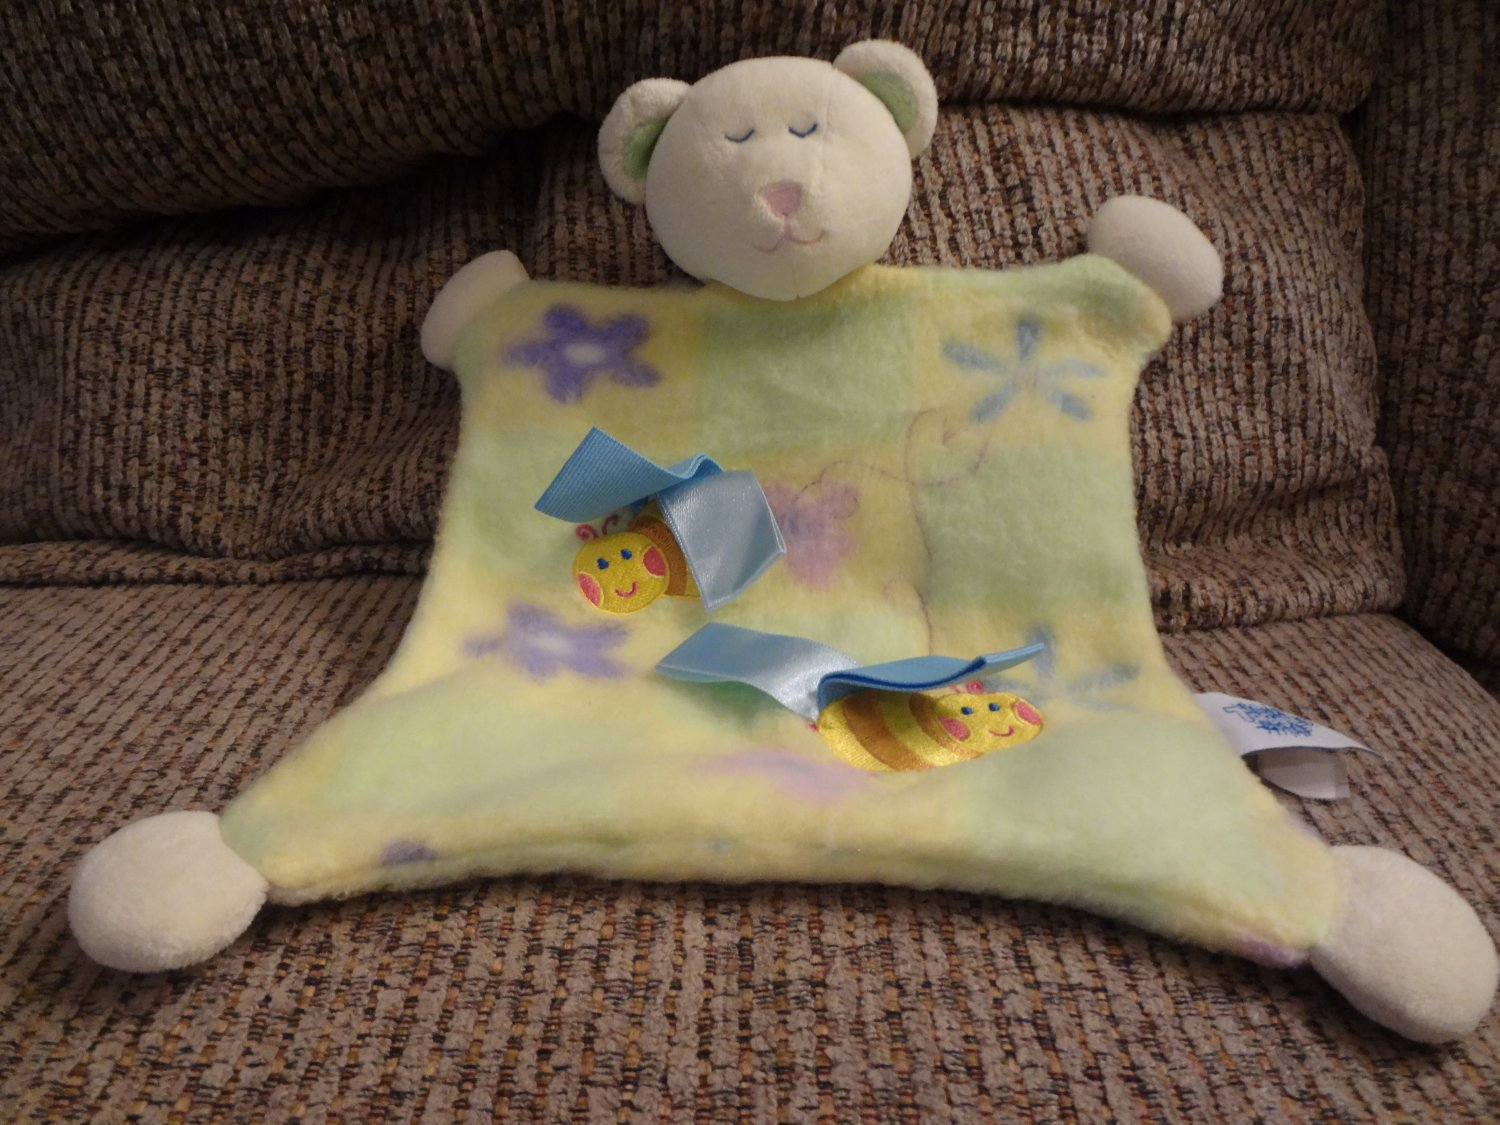 """Taggies Mary Meyer Baby Green Teddy Bear Bumble Bee Security Blanket Lovey Plush 10x10"""""""